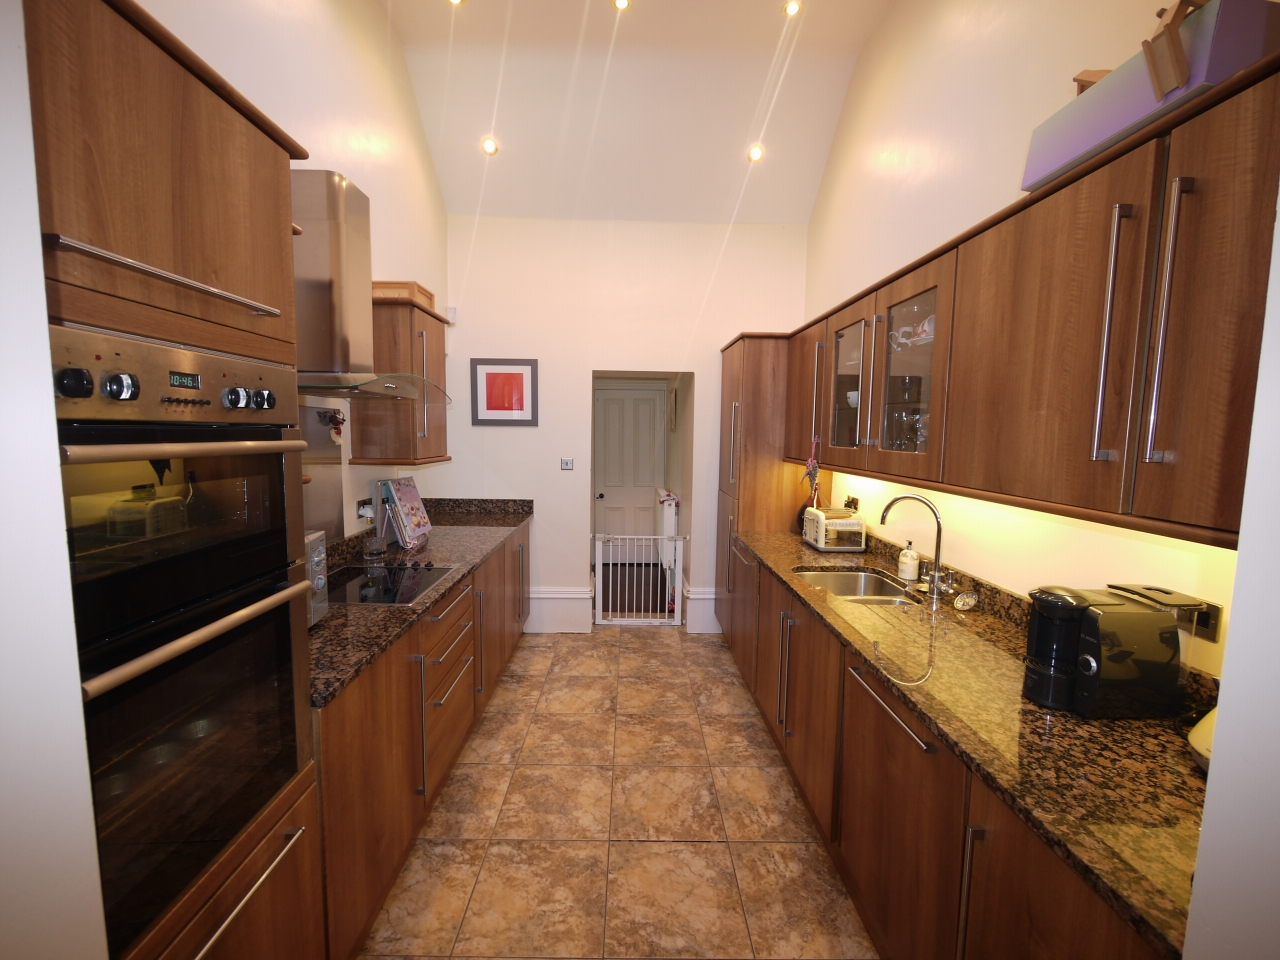 5 bedroom semi-detached house For Sale in Halilfax - Photograph 7.